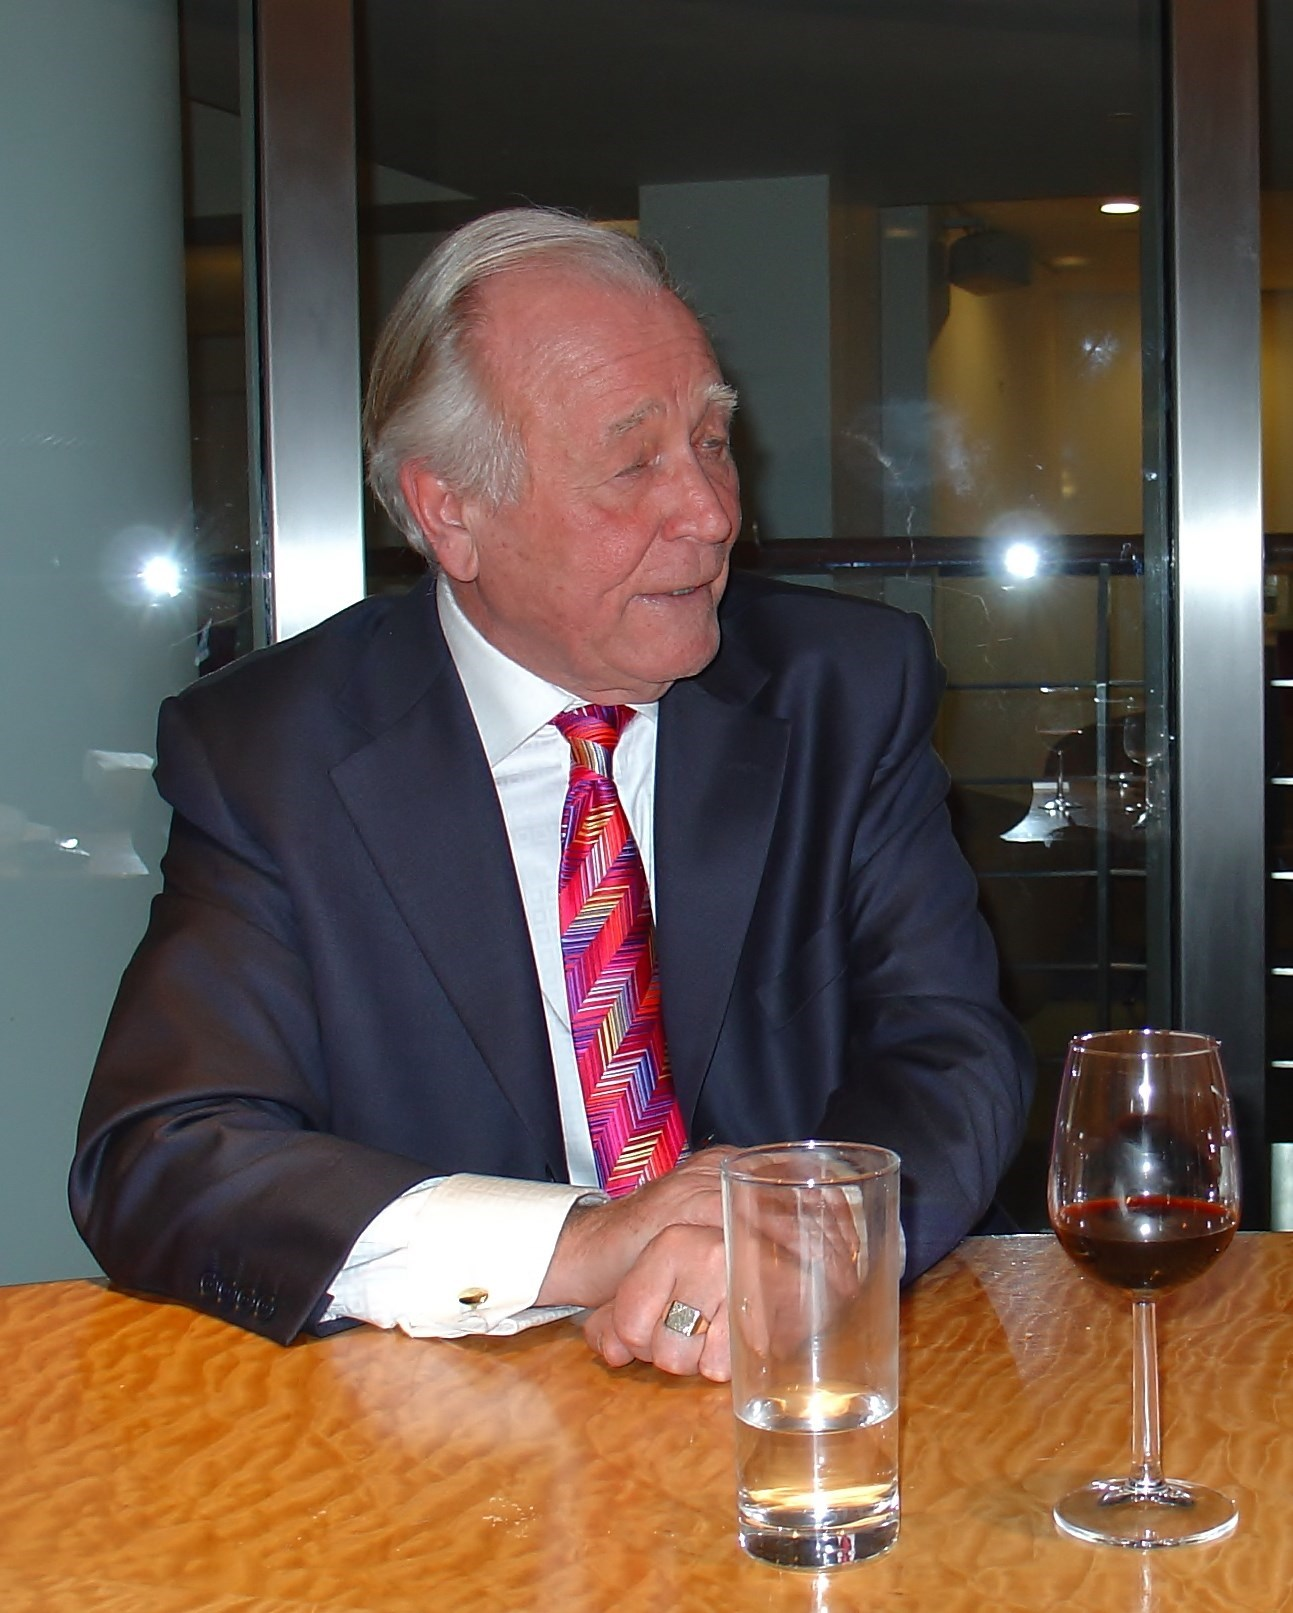 Hughie at the 3rd annual Loud Tie Competition in 2006. Immaculate as always!